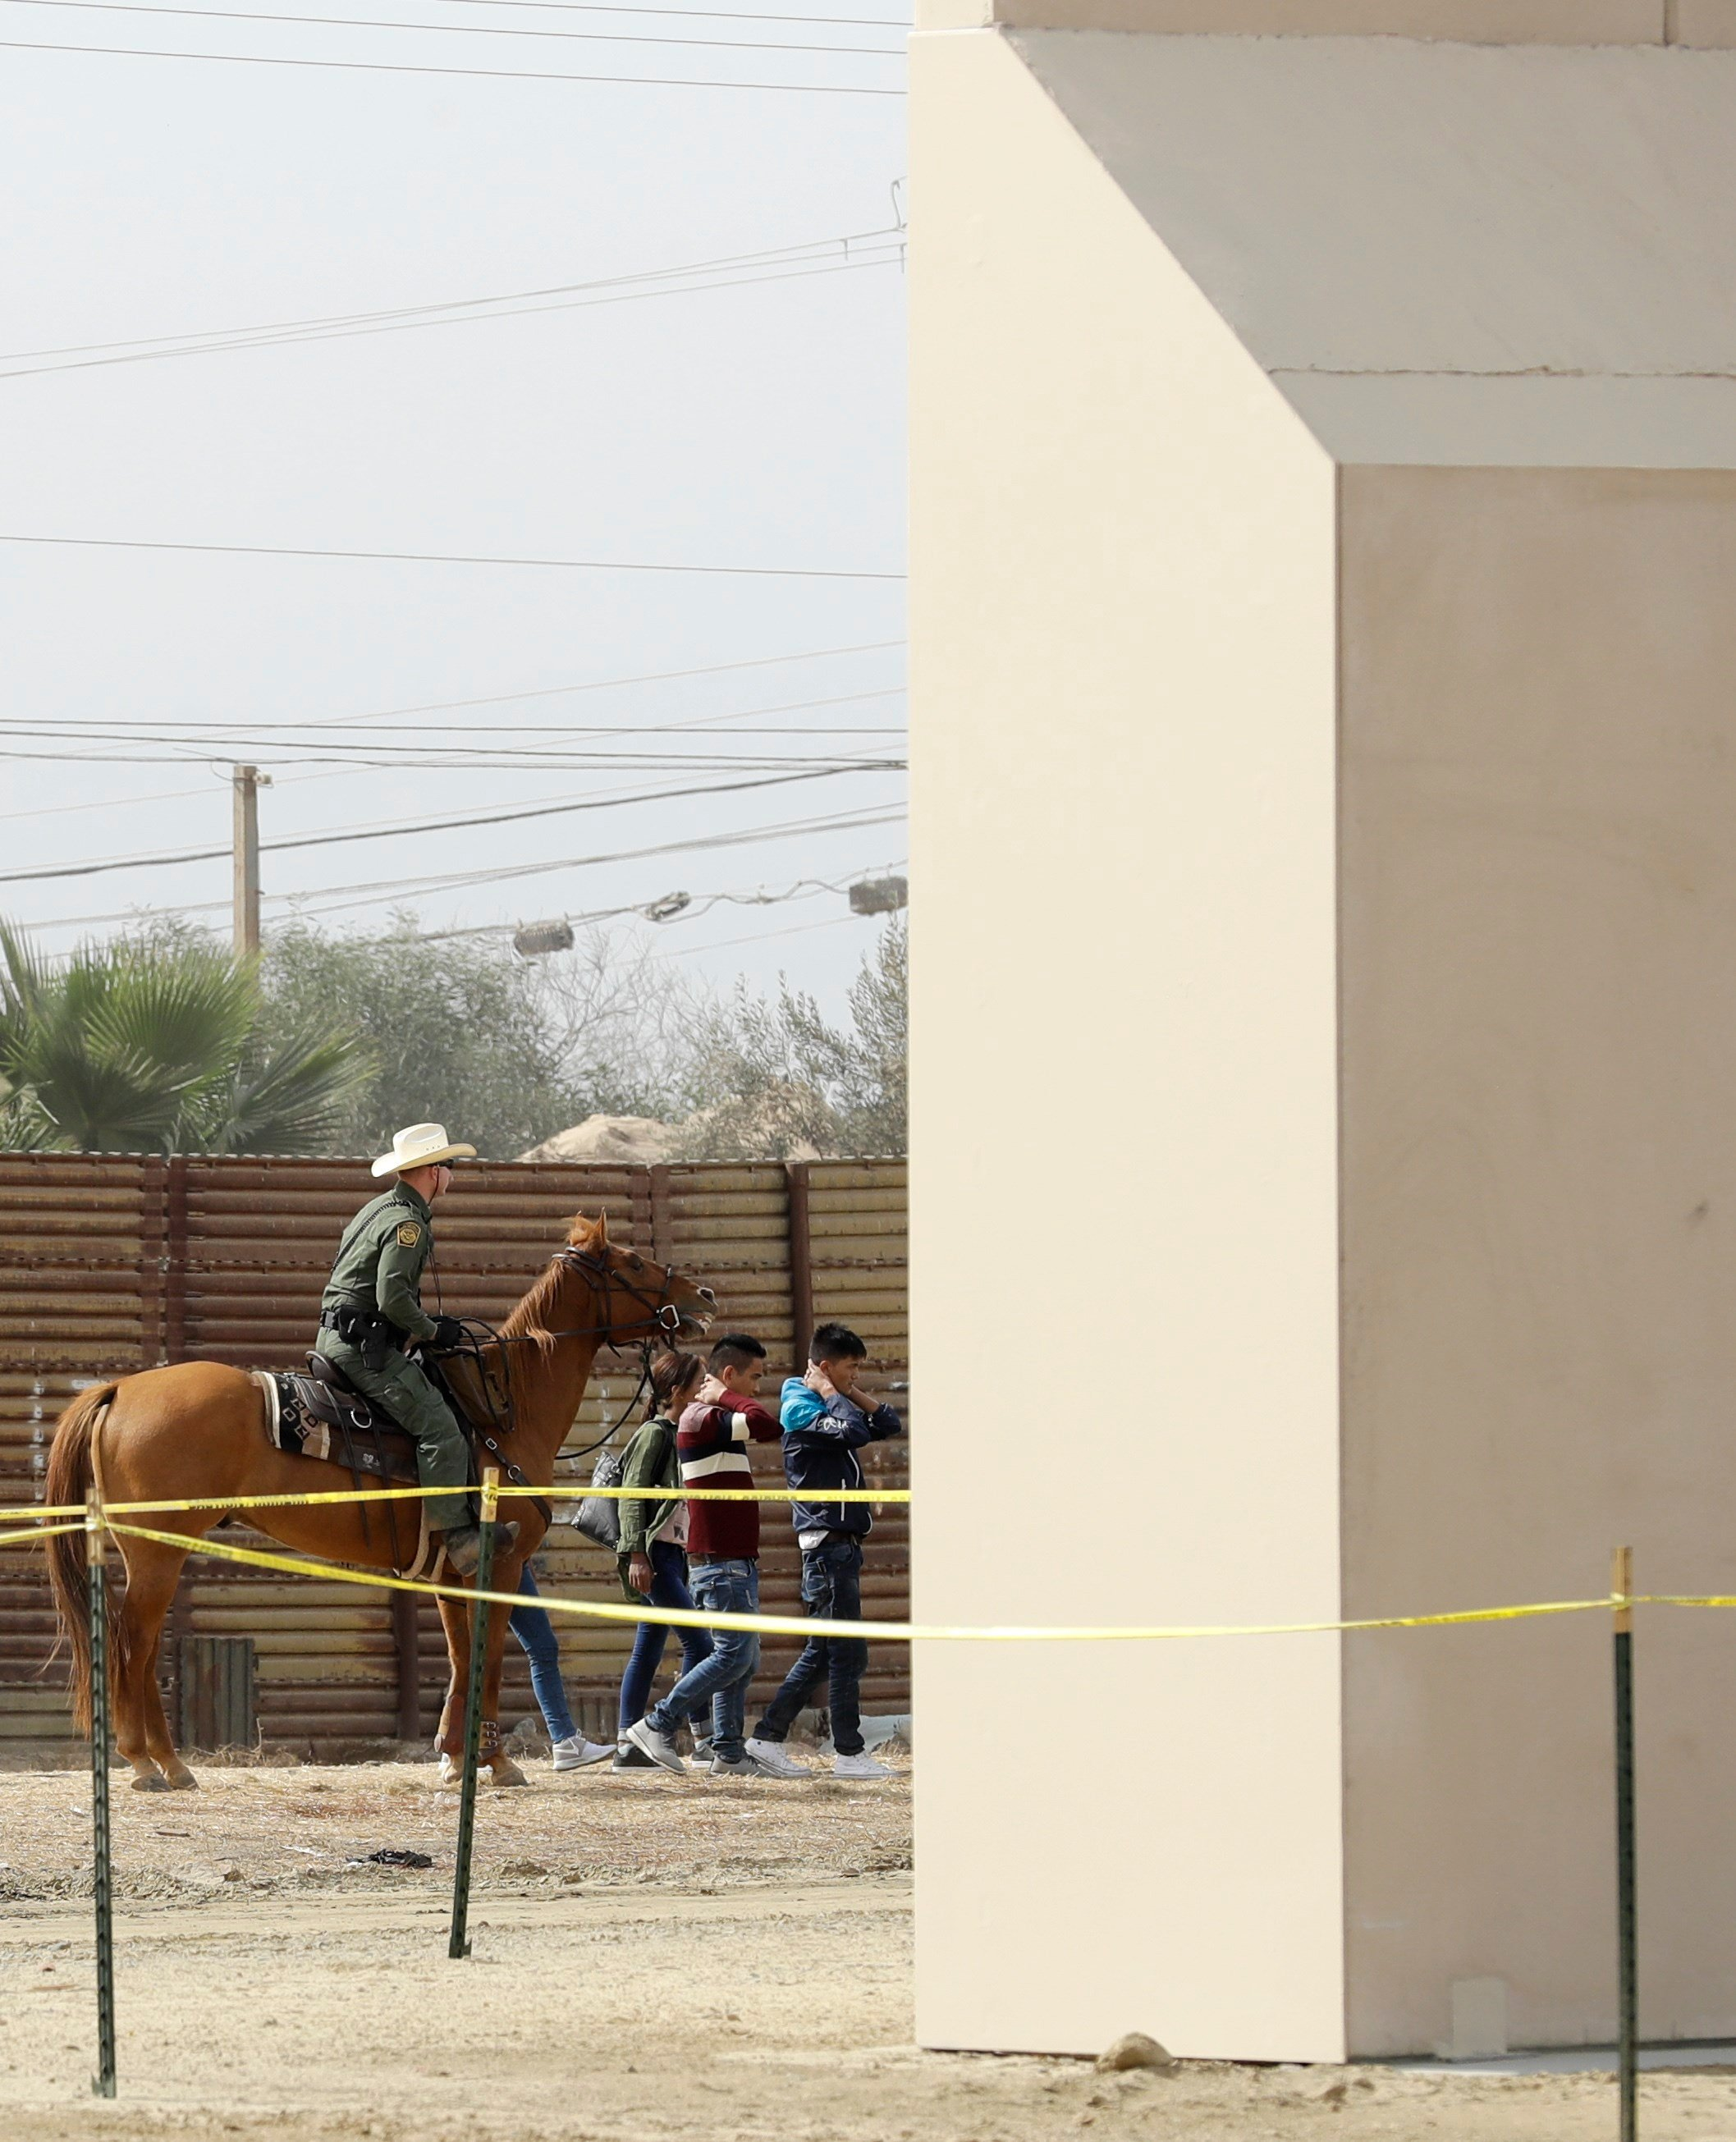 A group of people are detained by Border Patrol agents on horseback after crossing crossing the border illegally from Tijuana, Mexico, near prototypes for a border wall, right, are being constructed Thursday, Oct. 19, 2017, in San Diego.